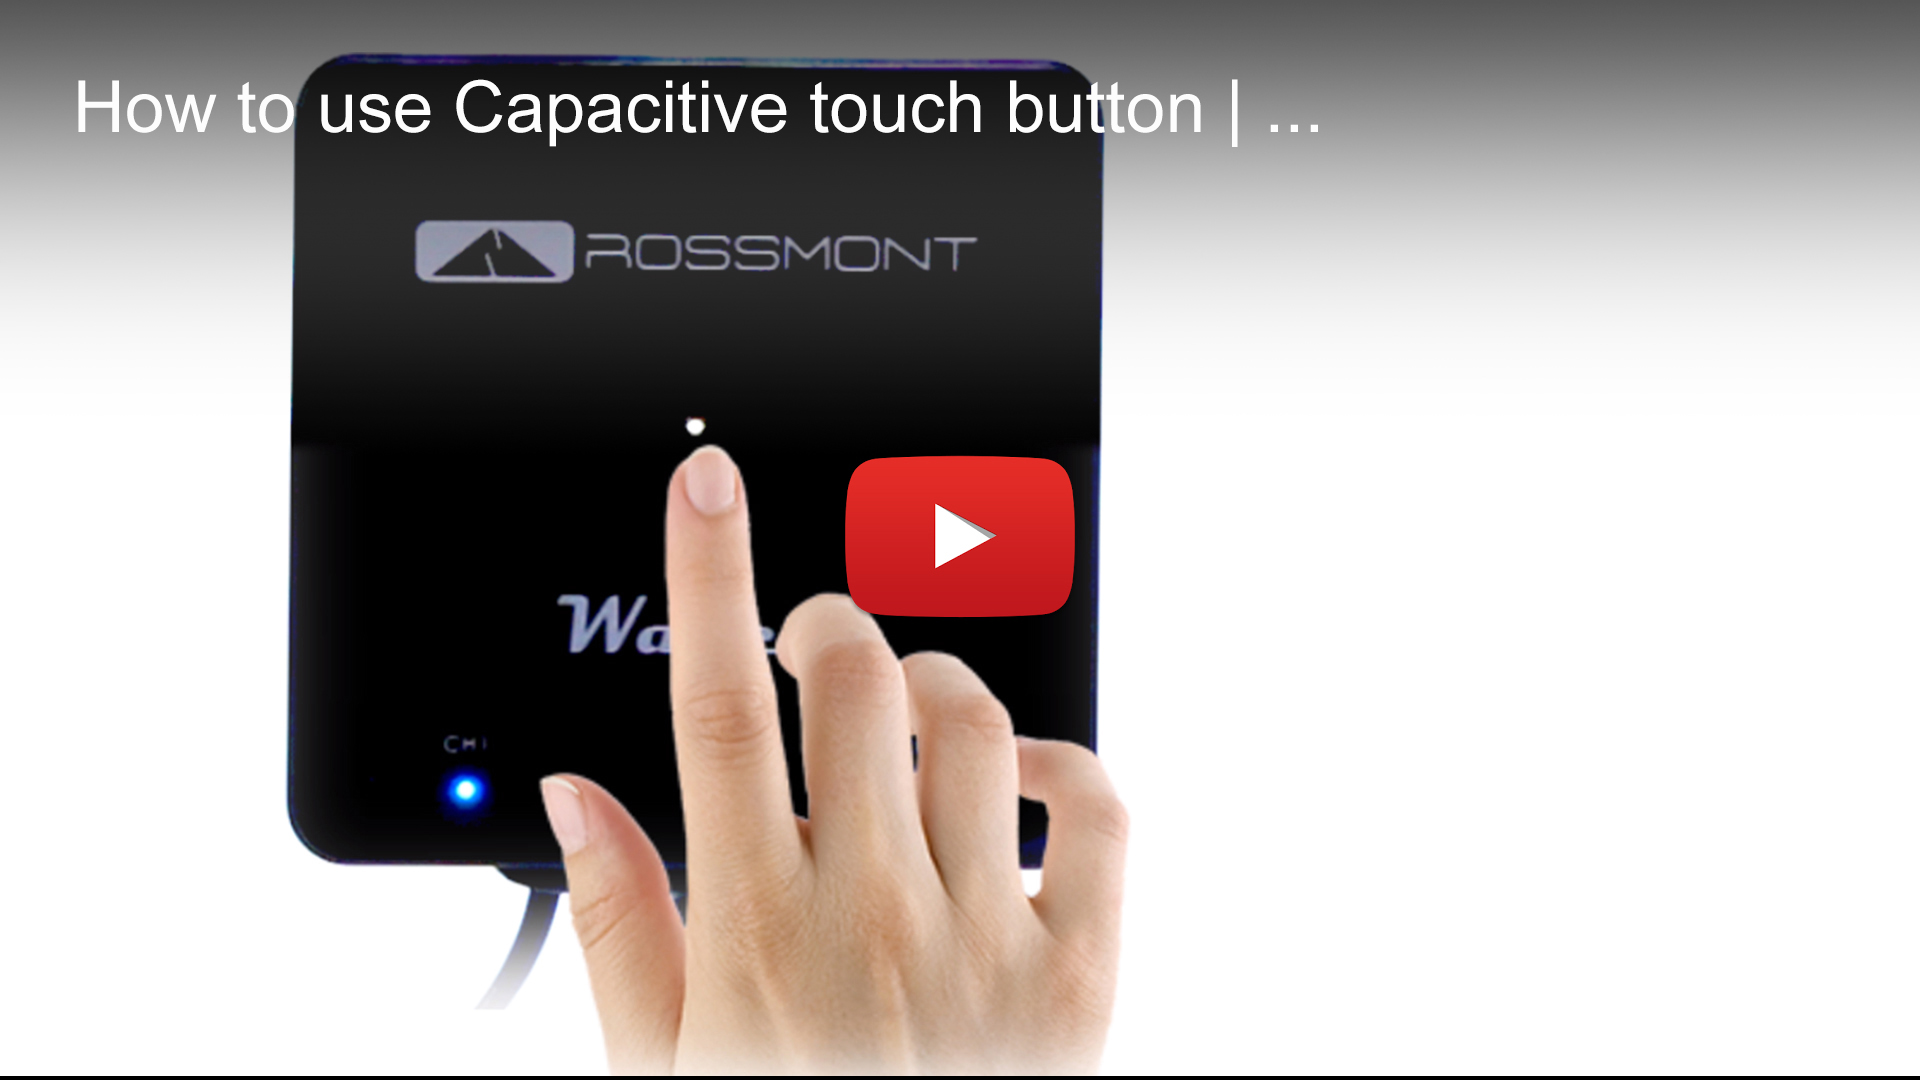 Capacitive Touch Button